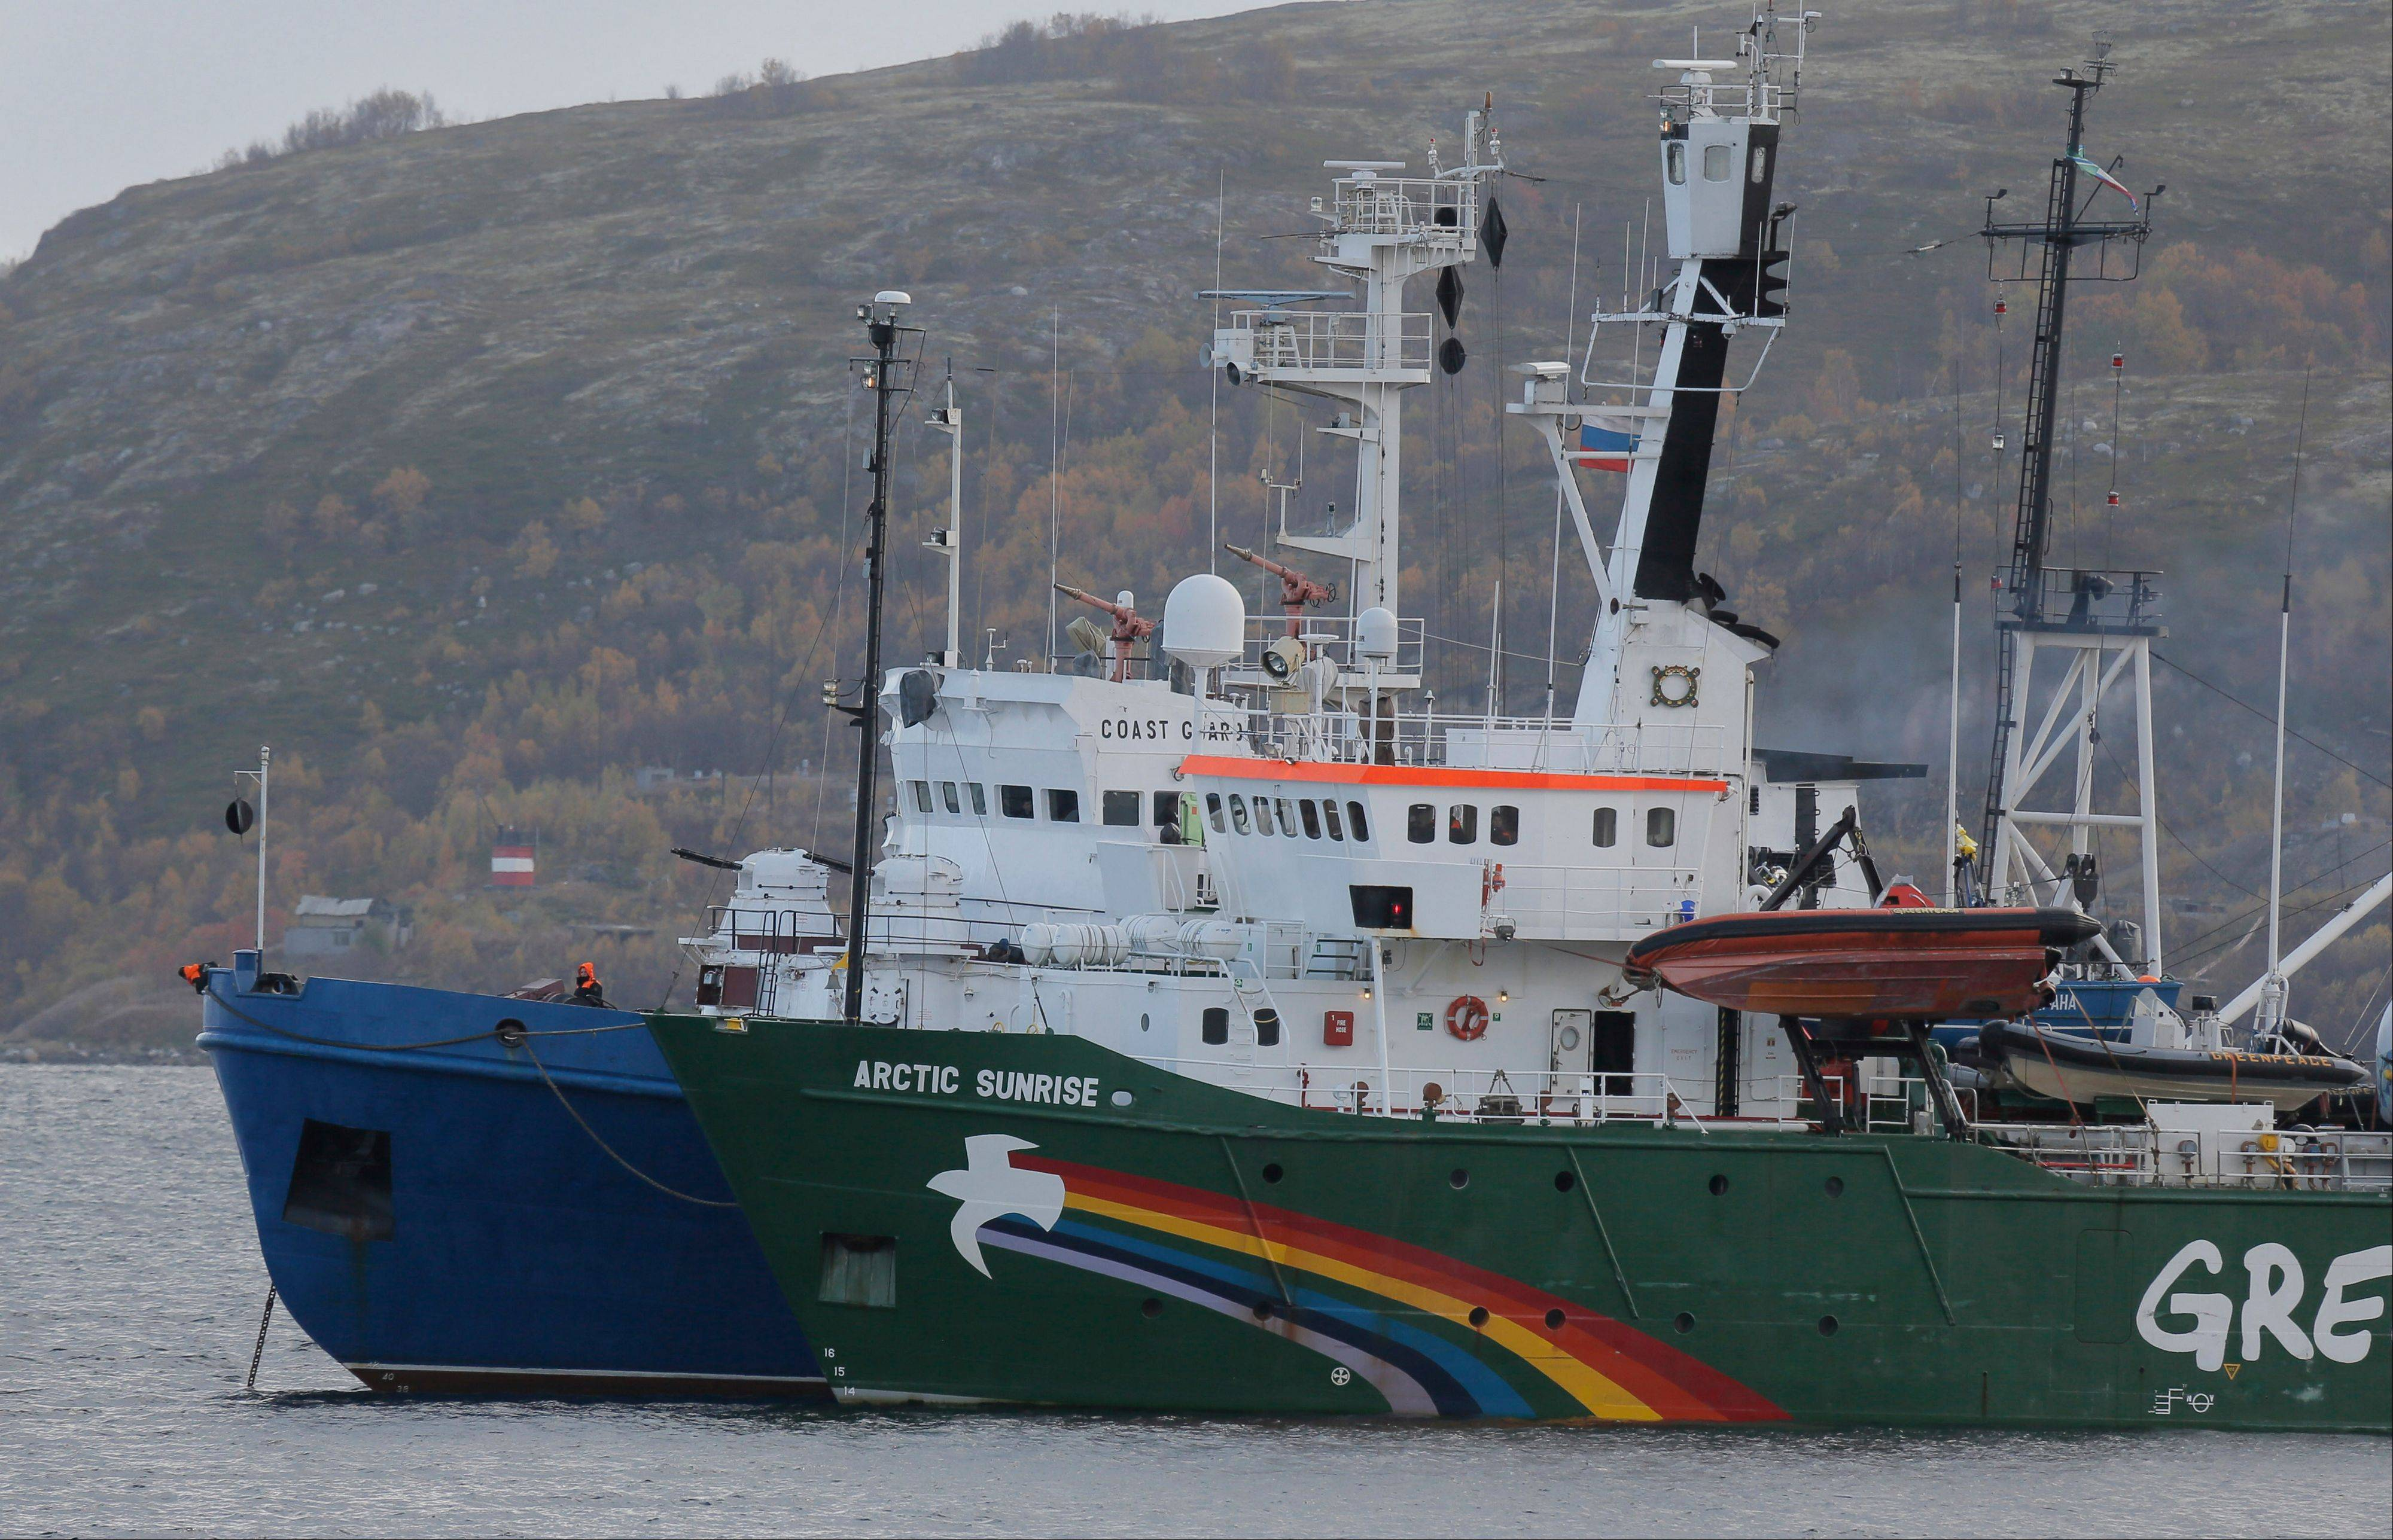 Greenpeace ship 'Arctic Sunrise' is escorted by a Russian coast guard boat, in Kola Bay at the military base Severomorsk on the Kola Peninsula in Russia, at dawn Tuesday, Sept. 24, 2013. Russia has filed piracy charges against Greenpeace activists who tried to board an offshore drilling platform in the Arctic owned by state-controlled natural gas company Gazprom.